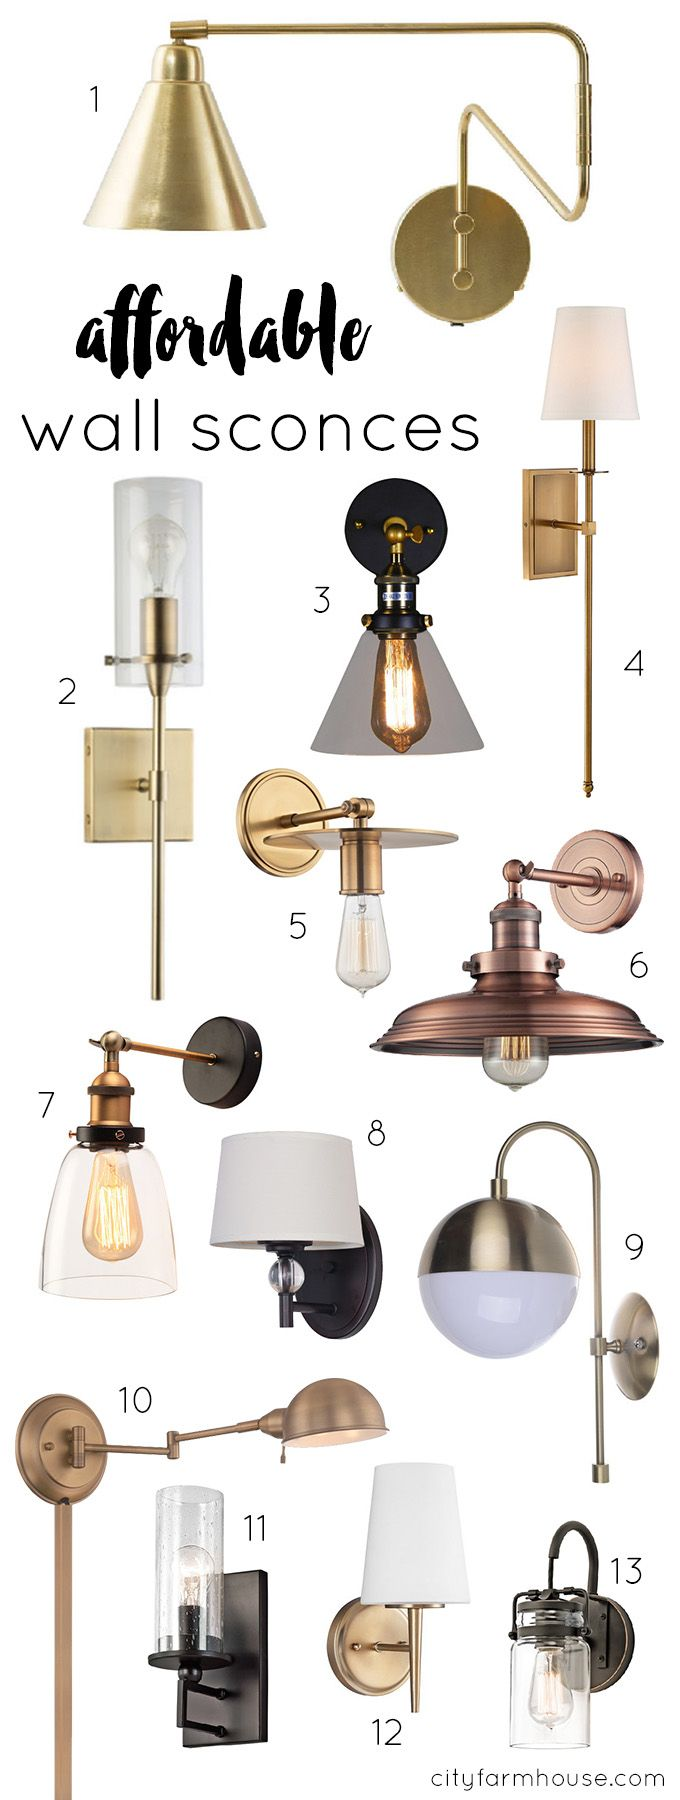 13 affordable wall sconces city farmhouse wall sconces and city 13 affordable wall sconces amipublicfo Image collections